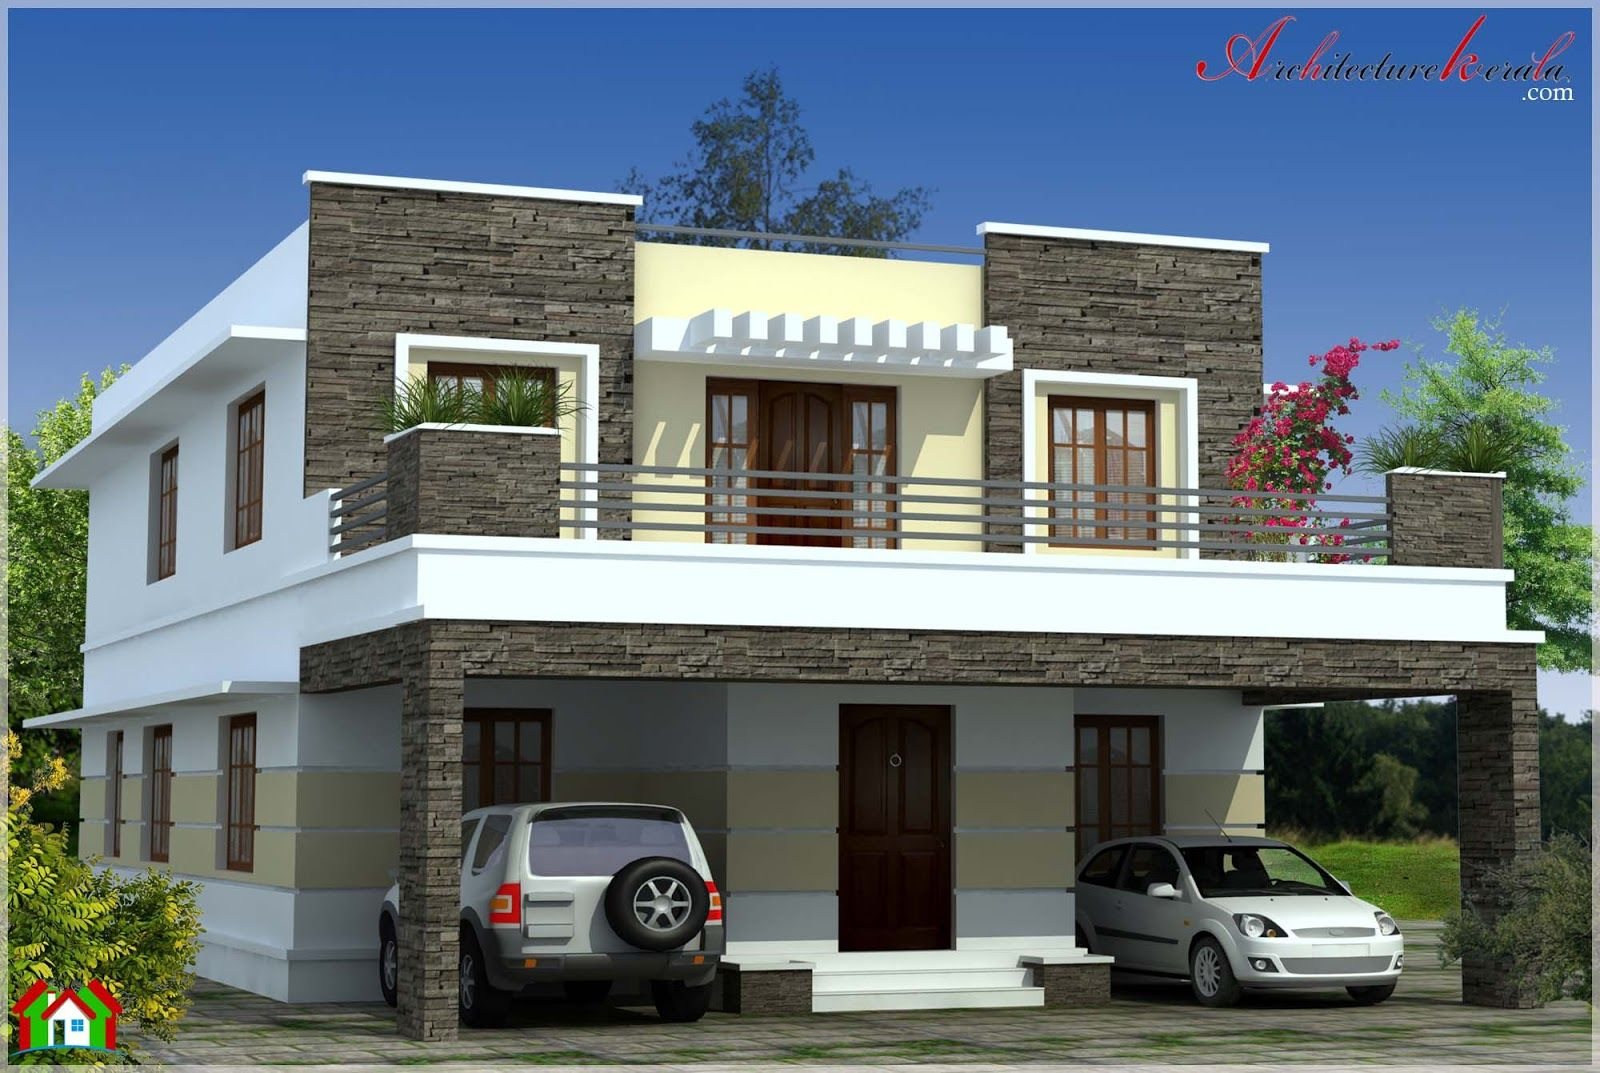 Simple contemporary style kerala house elevation beautiful homes and vacation spots - Simple modern house ...